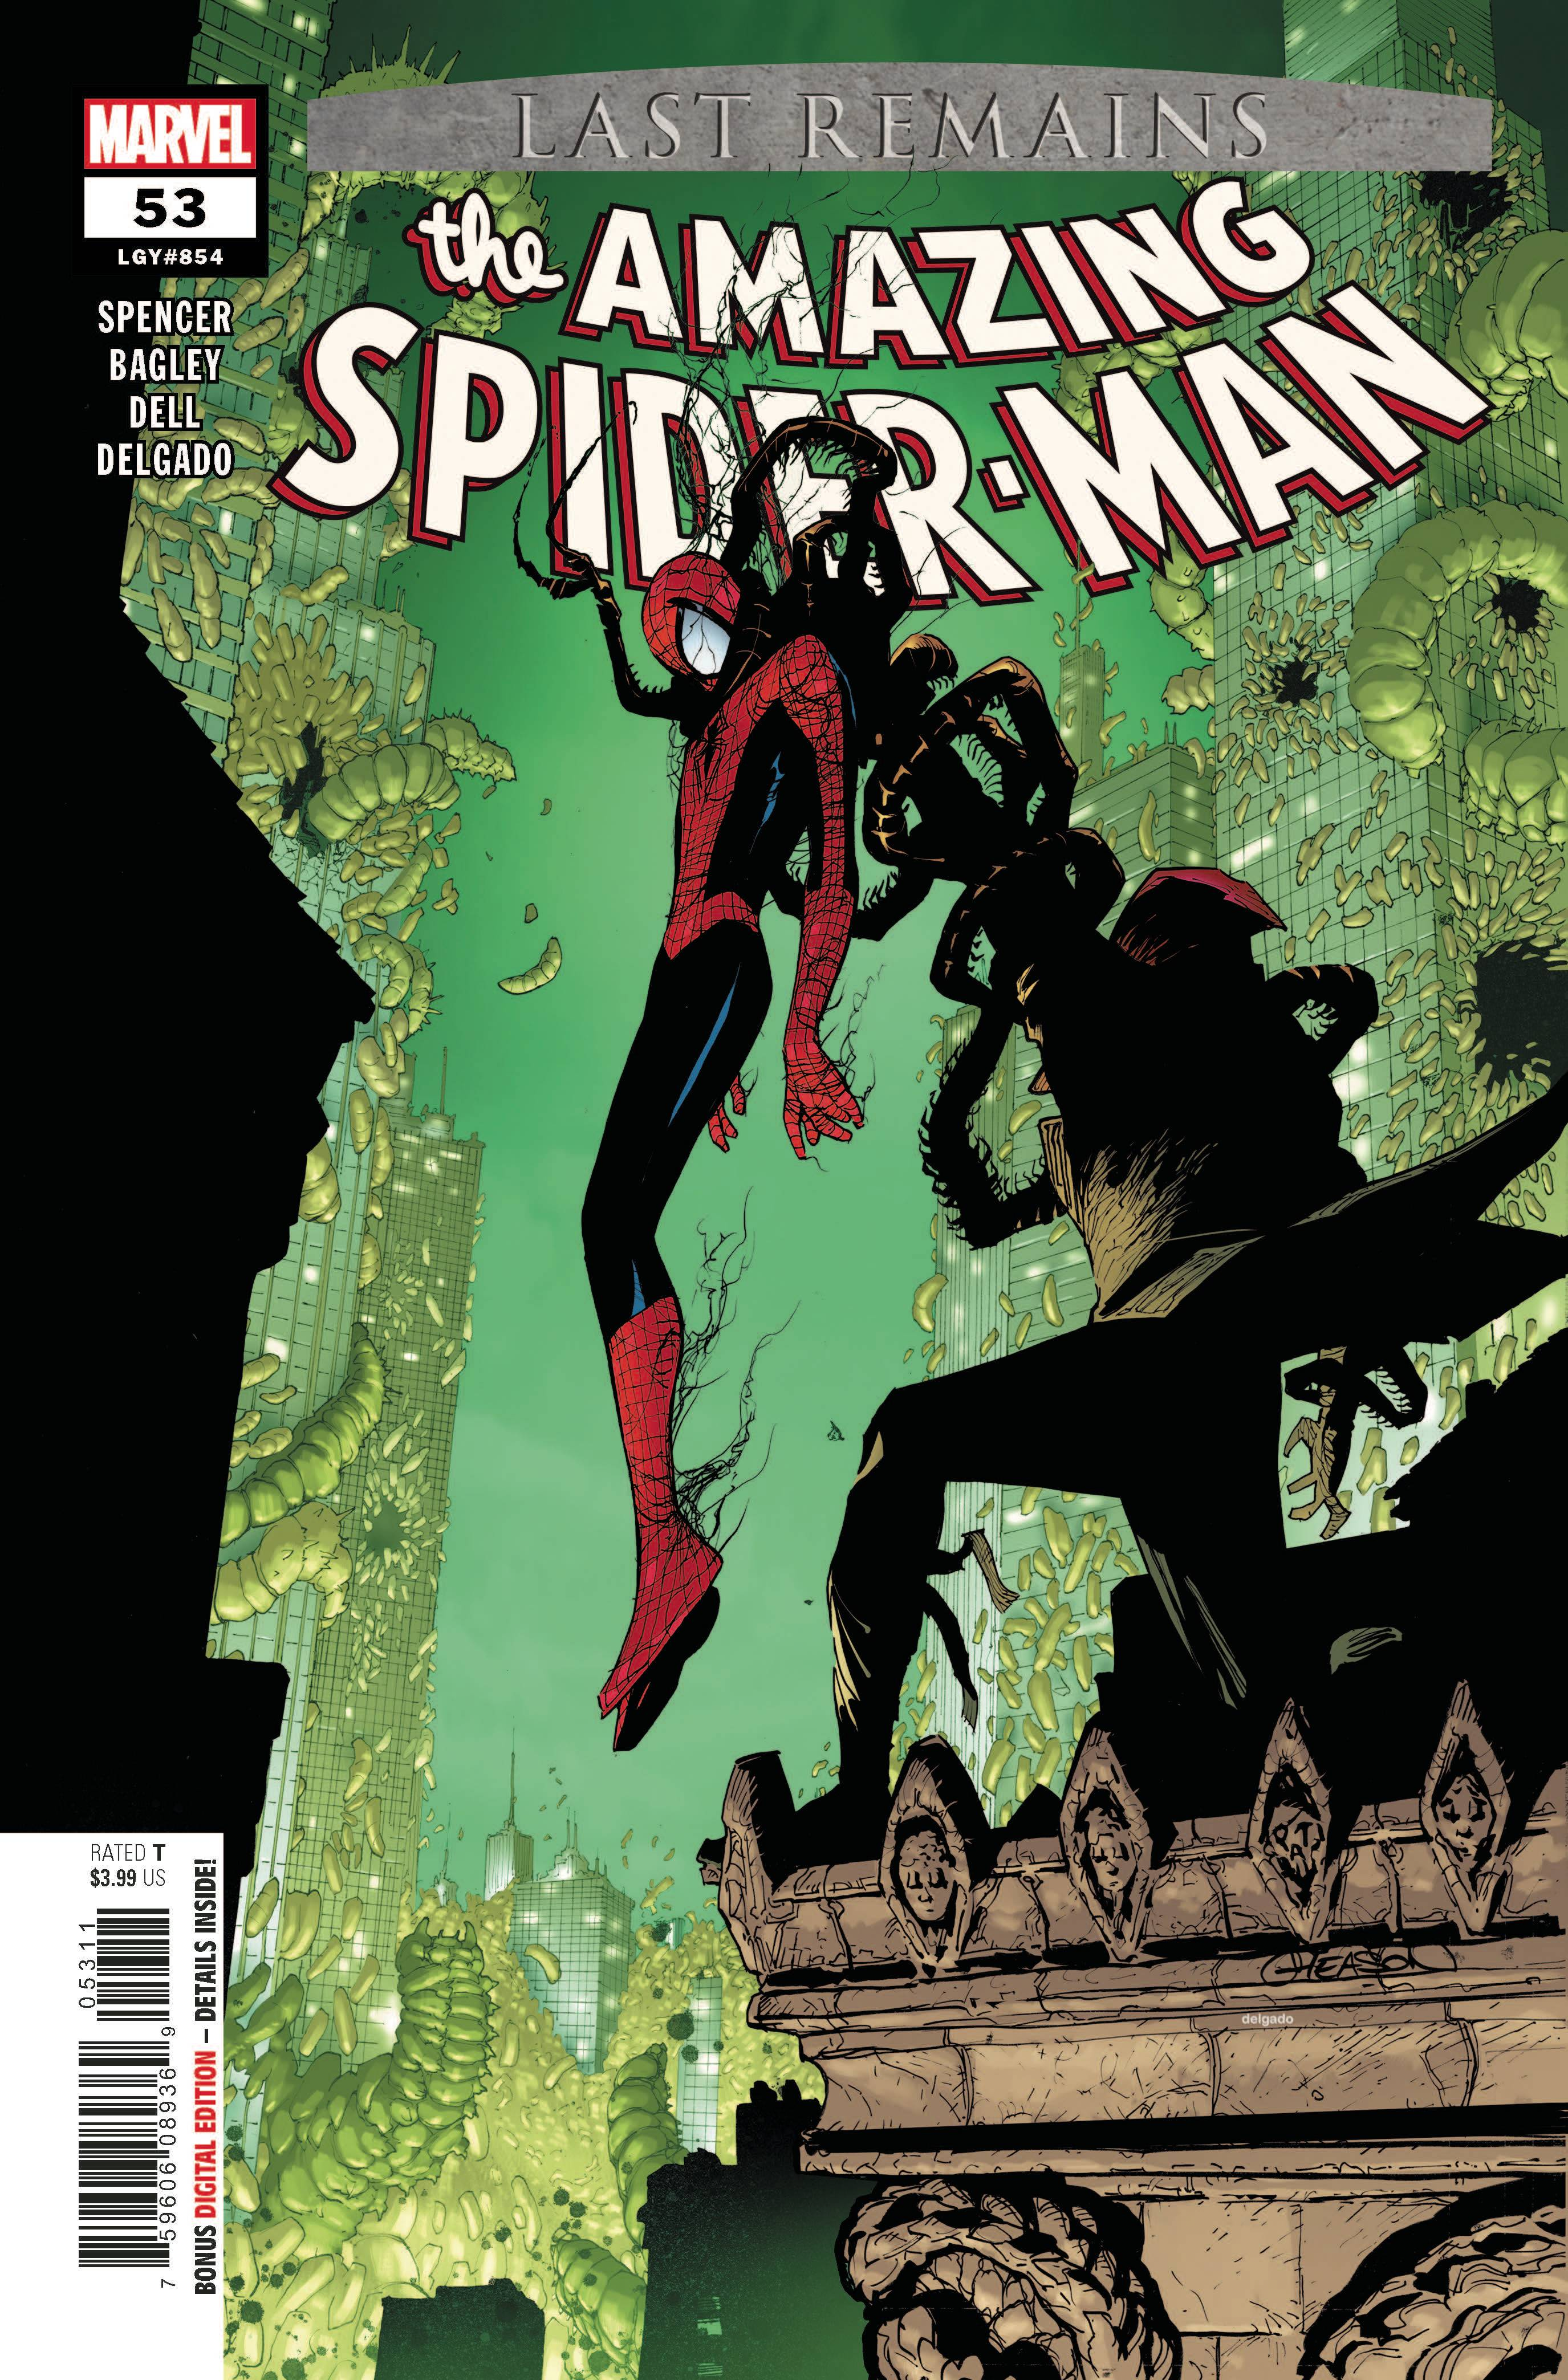 AMAZING SPIDER-MAN #53 LAST